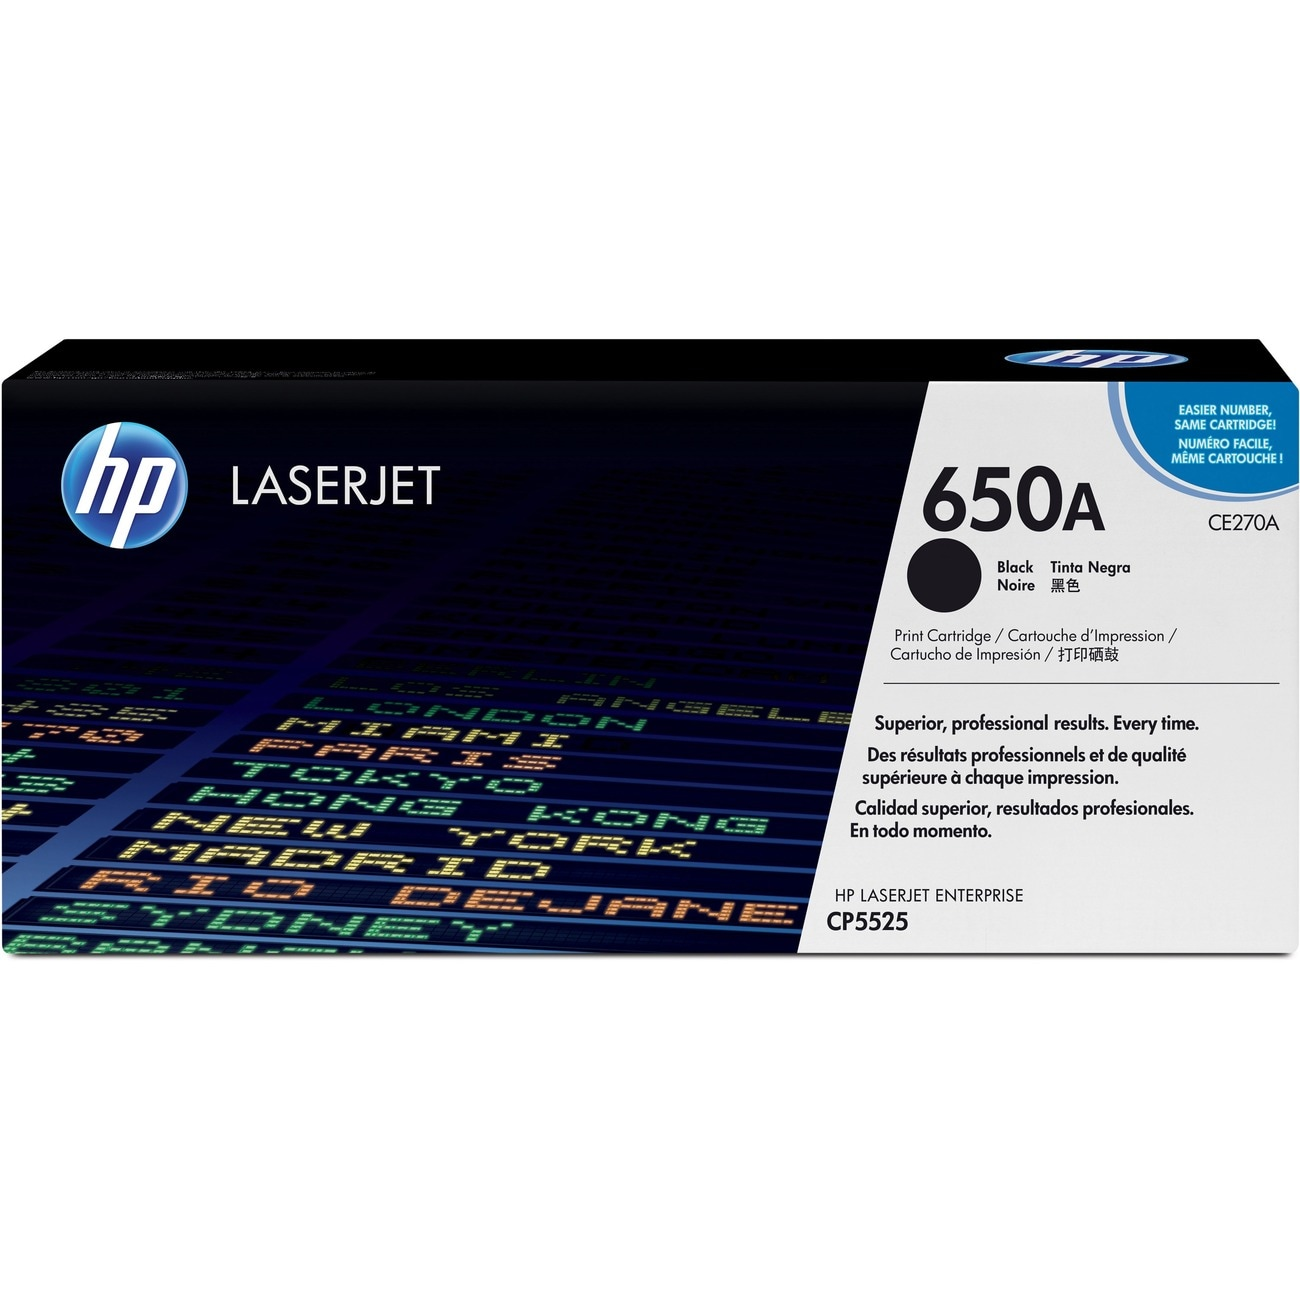 HP CE270A Toner Cartridge